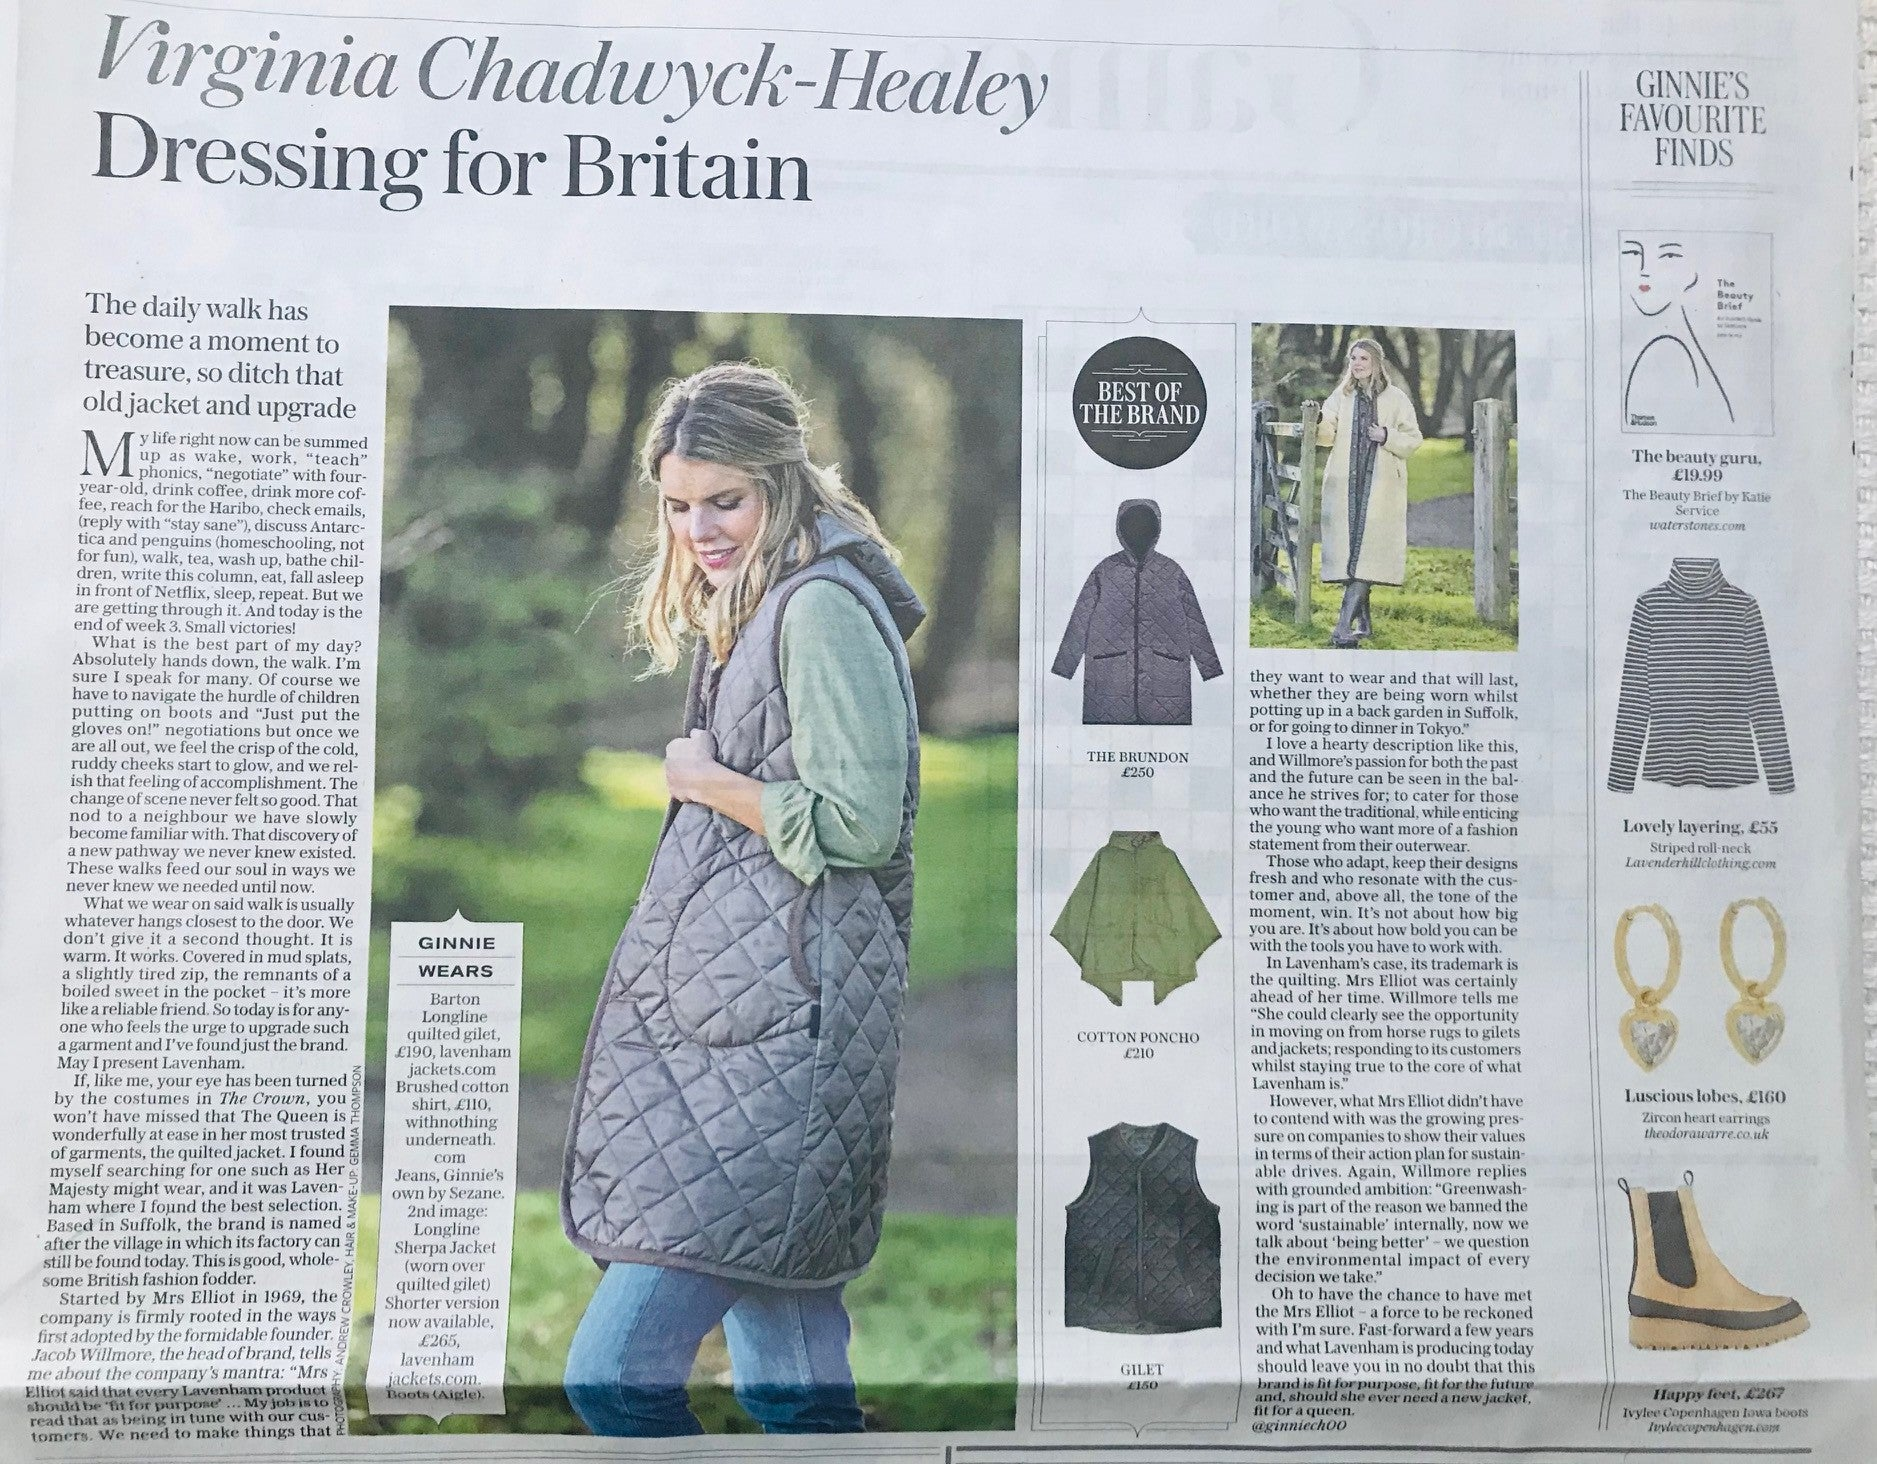 Striped Turtle Neck featured in the Telegraph